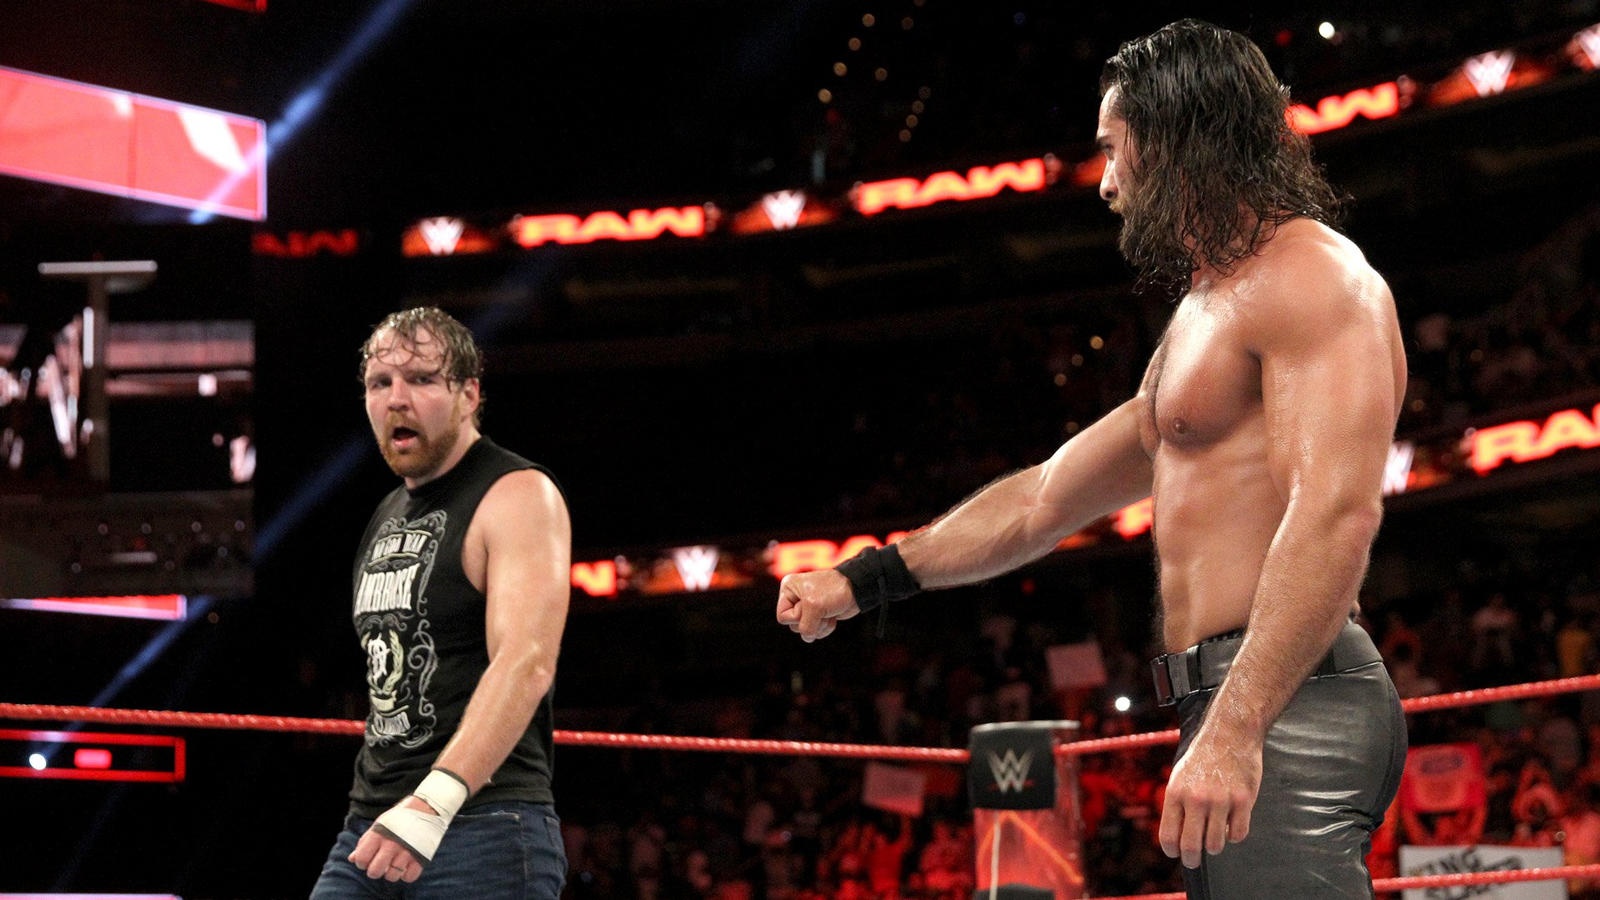 WWE Raw results, July 24, 2017: Are Rollins and Ambrose Poised To Reignite Their Shield Alliance?